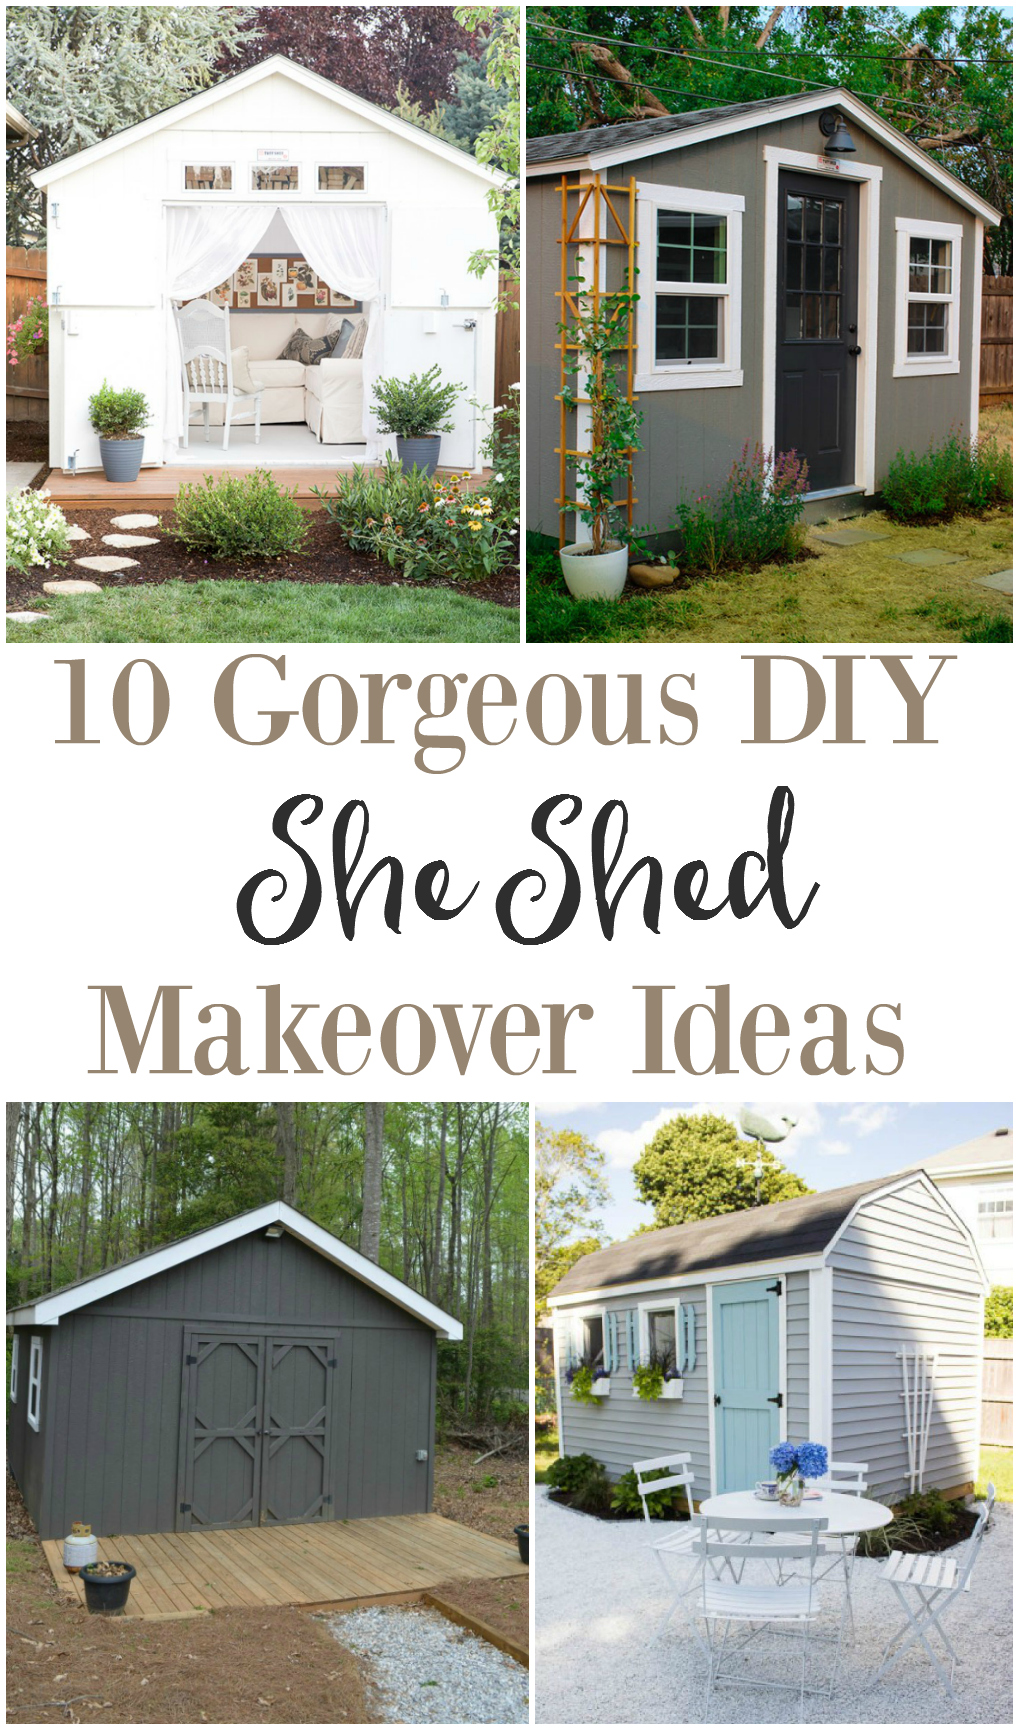 She Shed Makeover Ideas - The Weathered Fox